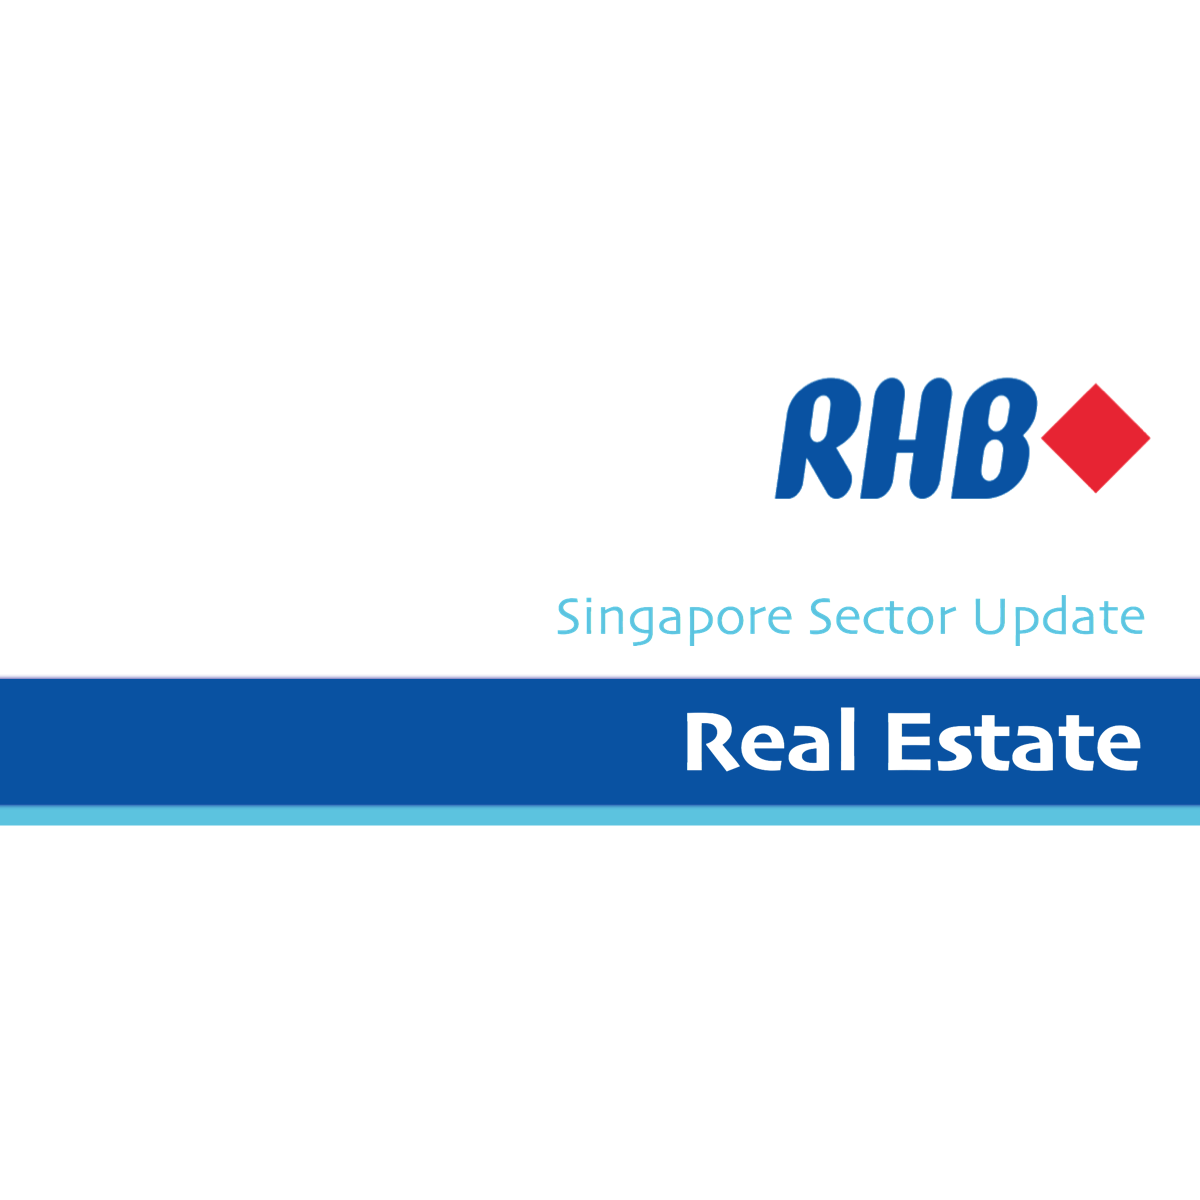 Real Estate - RHB Invest 2017-03-13: Unexpected Minor Easing Of Cooling Measures